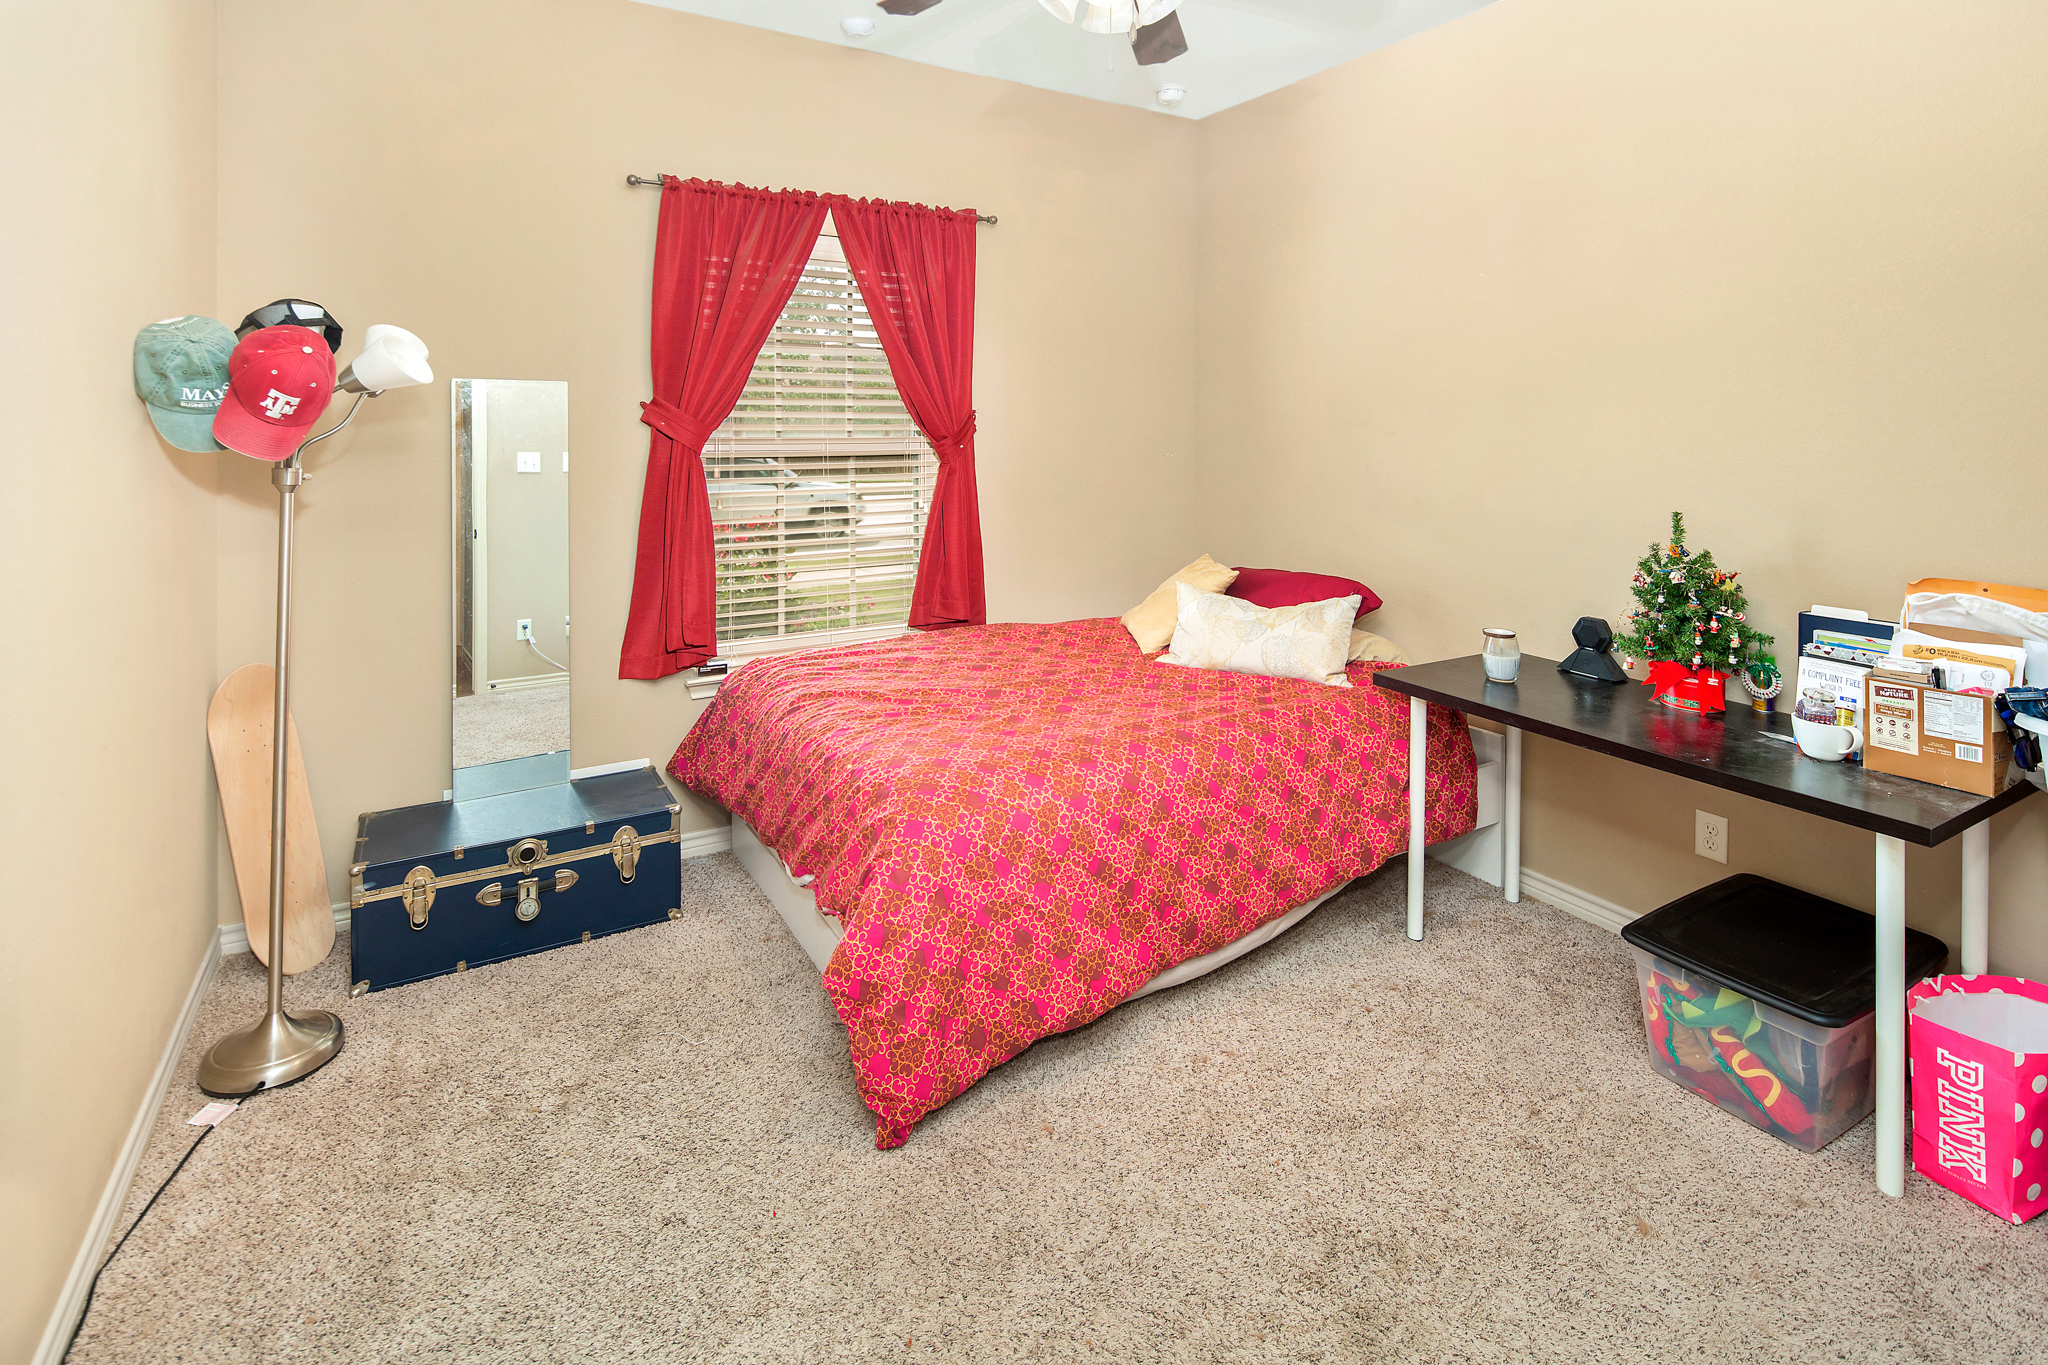 Just Listed! 2/2 Single Family Home in The Barracks on volleyball drawing ideas, volleyball motivational ideas, creative volleyball ideas, volleyball locker decorations, volleyball treat bag ideas, volleyball sign ideas, volleyball wall decoration ideas, volleyball planning sheets, volleyball centerpiece ideas, volleyball craft ideas, volleyball high school ideas, volleyball painting ideas, volleyball home ideas, volleyball party ideas, volleyball scrapbook ideas, volleyball cupcakes ideas, volleyball cookies, volleyball valentine ideas, volleyball gift ideas, volleyball candy ideas,